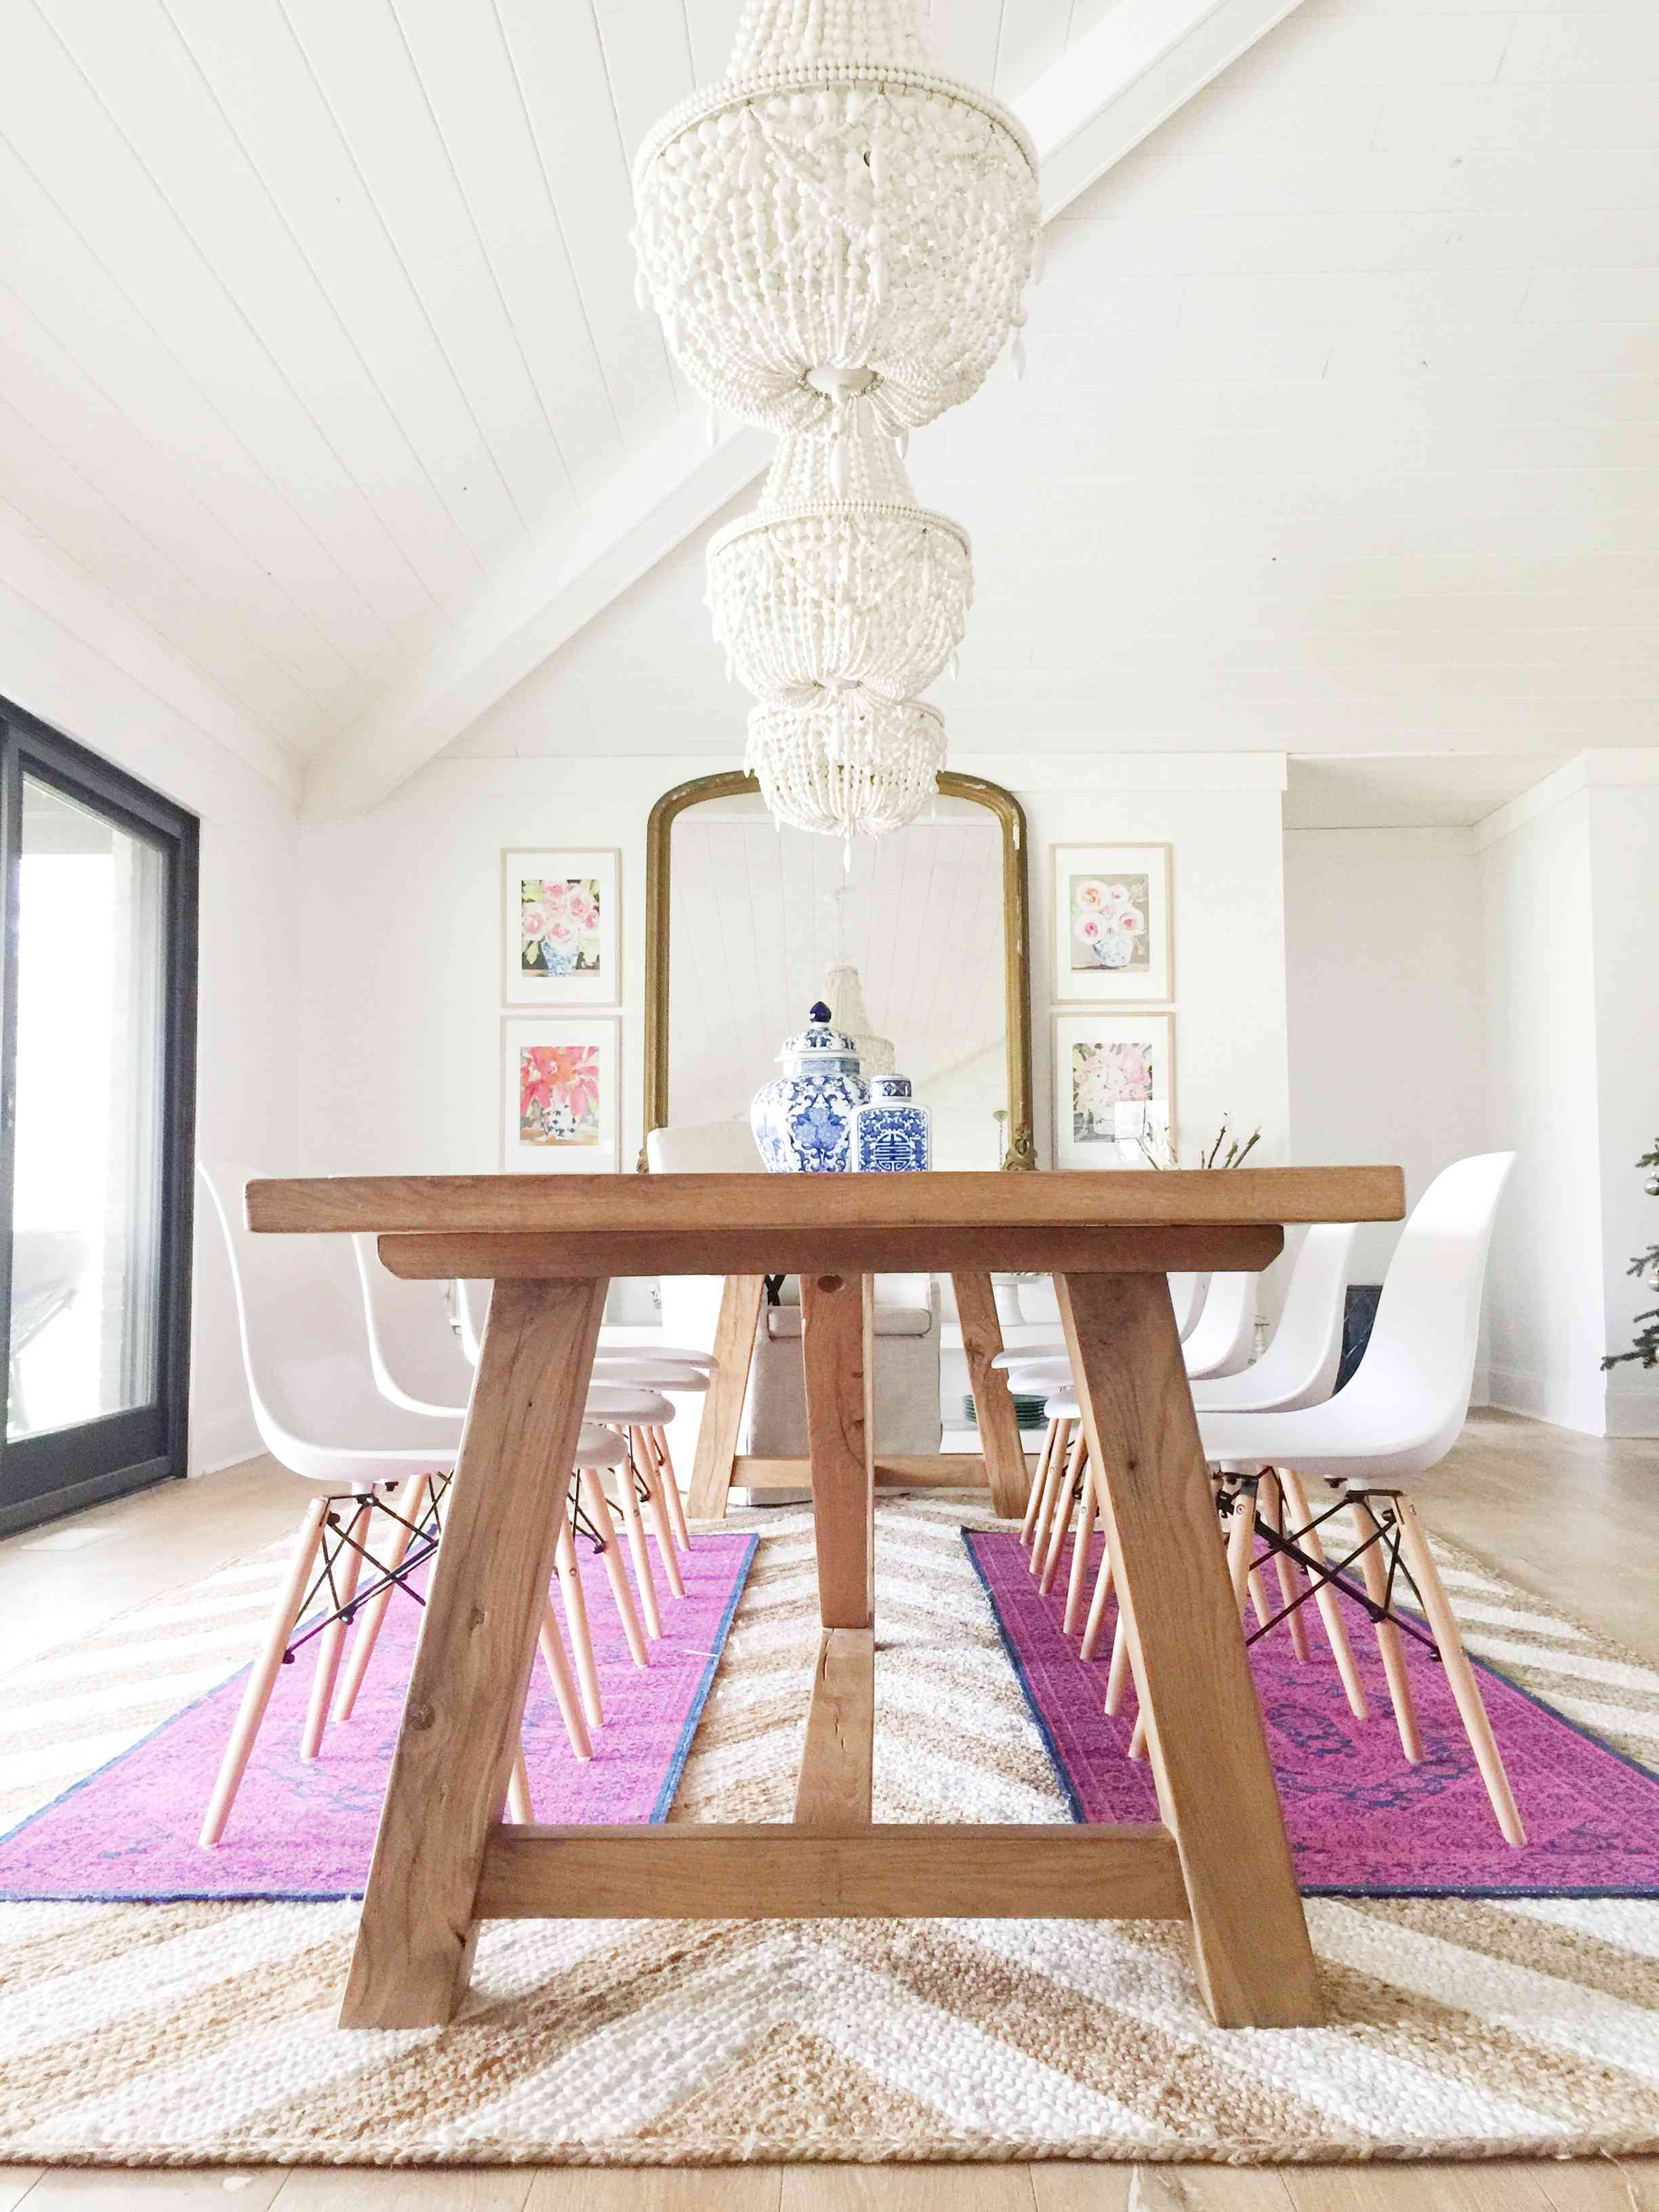 colorful rugs layered over jute in dining room